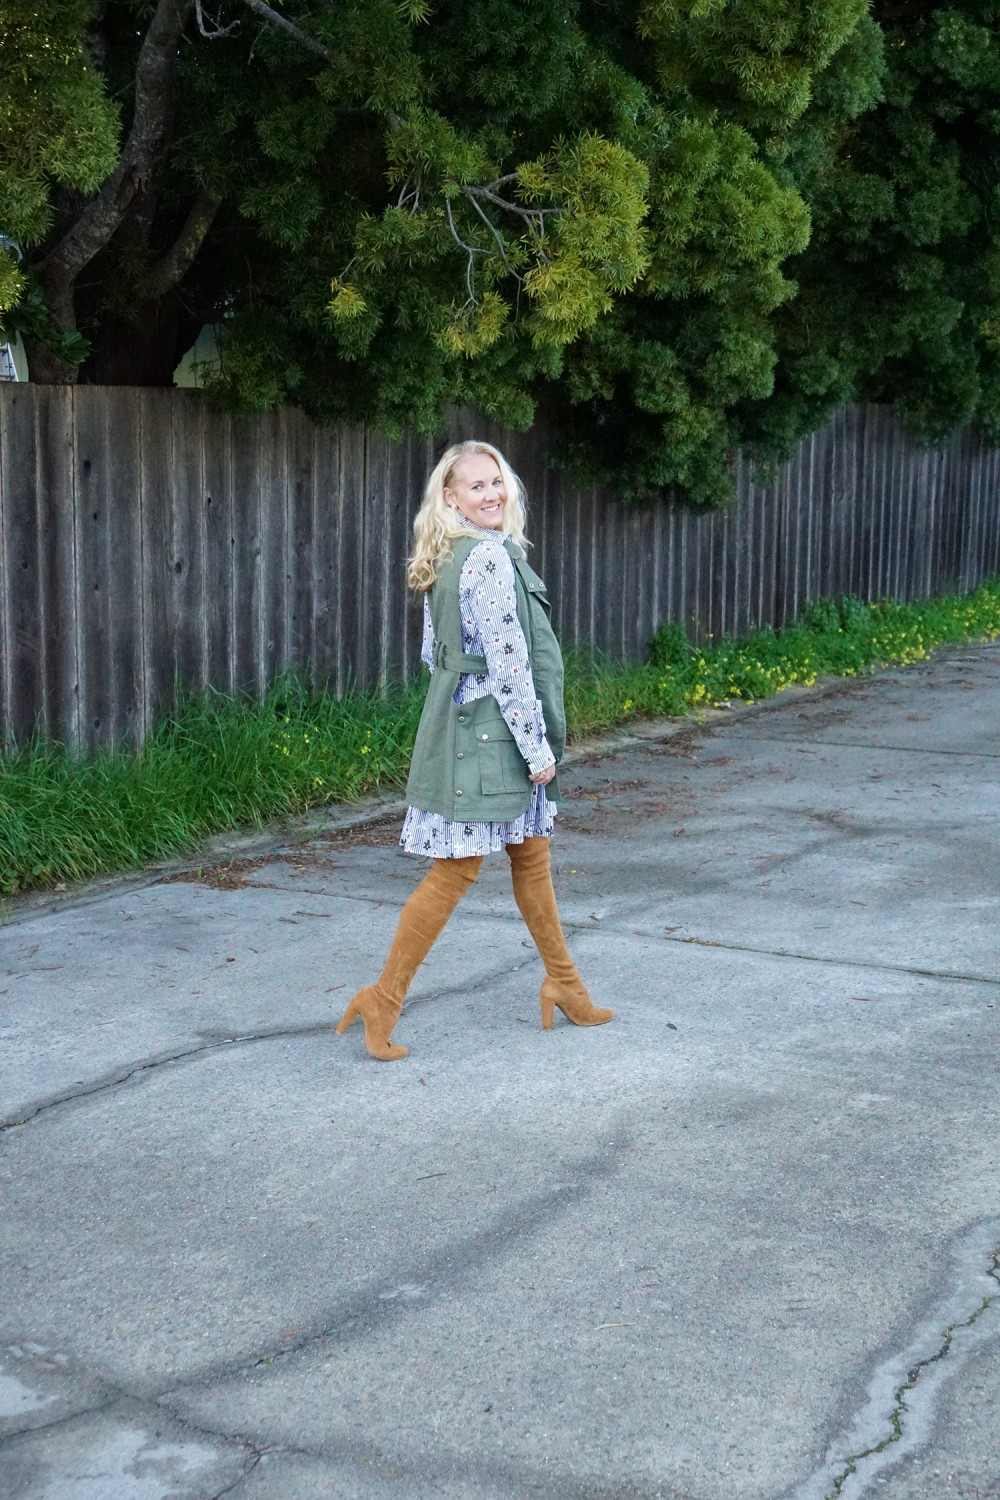 Opening Ceremony Pinstripe and Floral Shirtdress-Spring Style-Outfit Inspiration-Bay Area Fashion Blogger-Stuart Weitzman-Highland Boots-Have Need Want 6